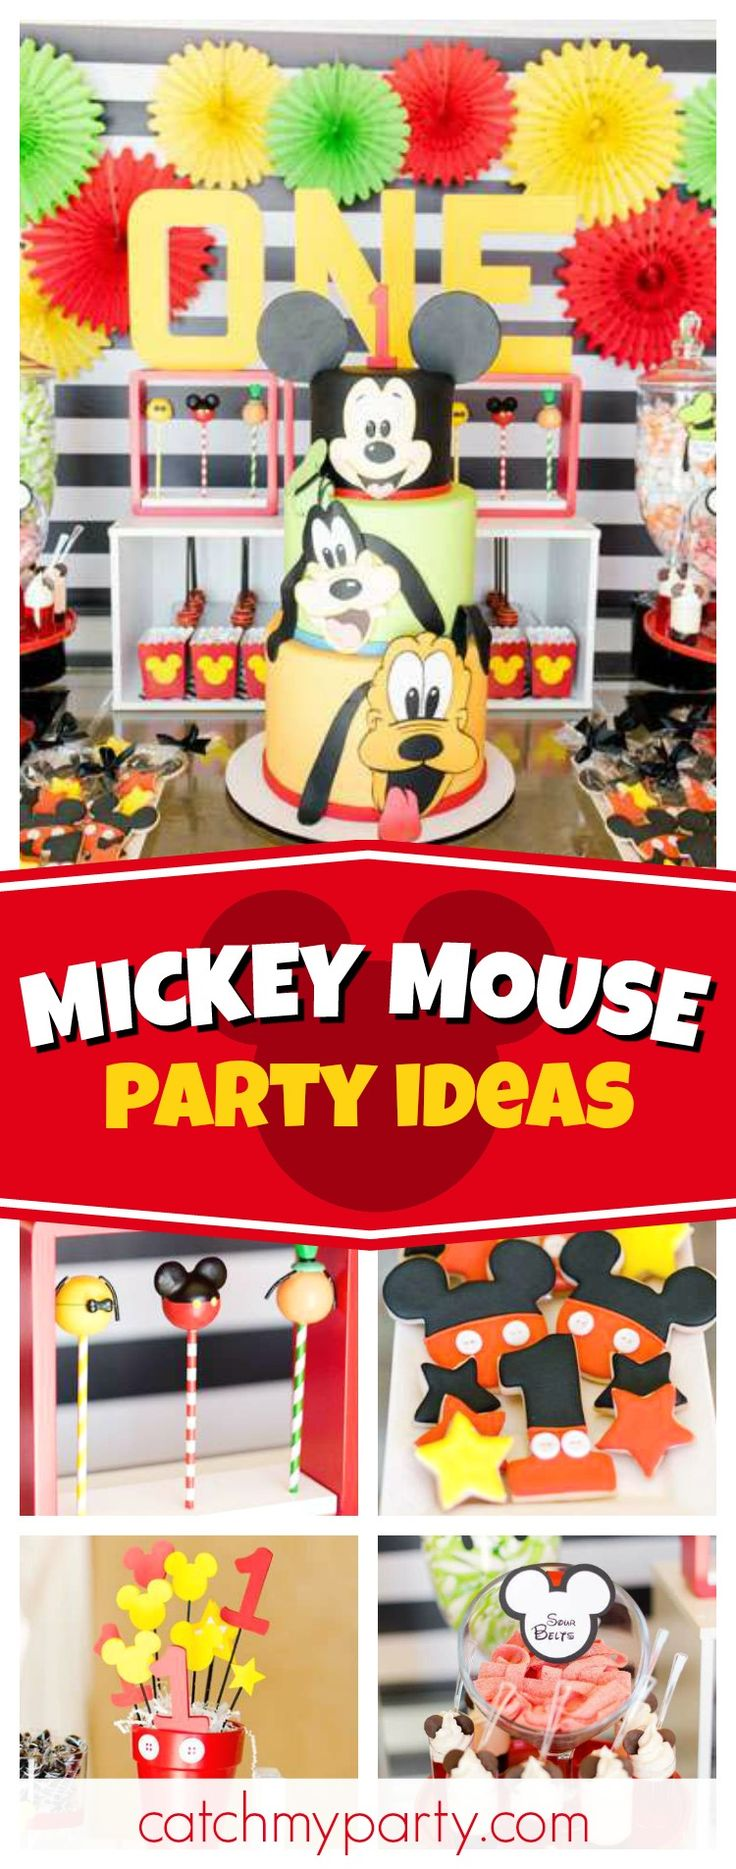 Check out this fun Mickey and Pals 1st birthday party! The birthday cake is incredible!! See more party ideas and share yours at CatchMyParty.com #mickey #disney